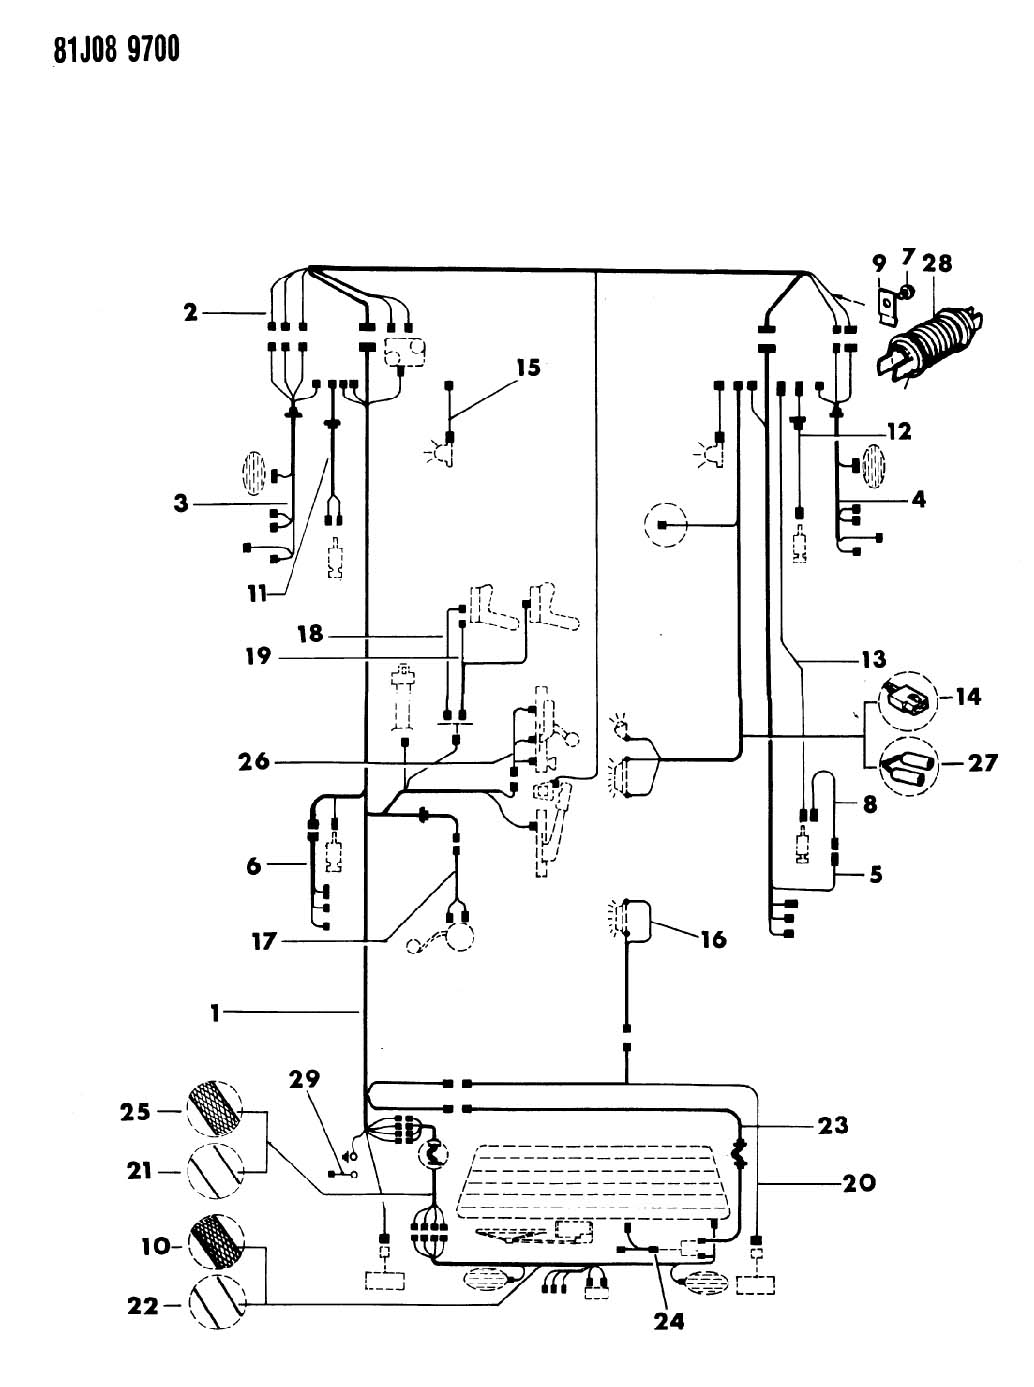 Chrysler Wire Diagram Tow Package. Chrysler. Auto Wiring